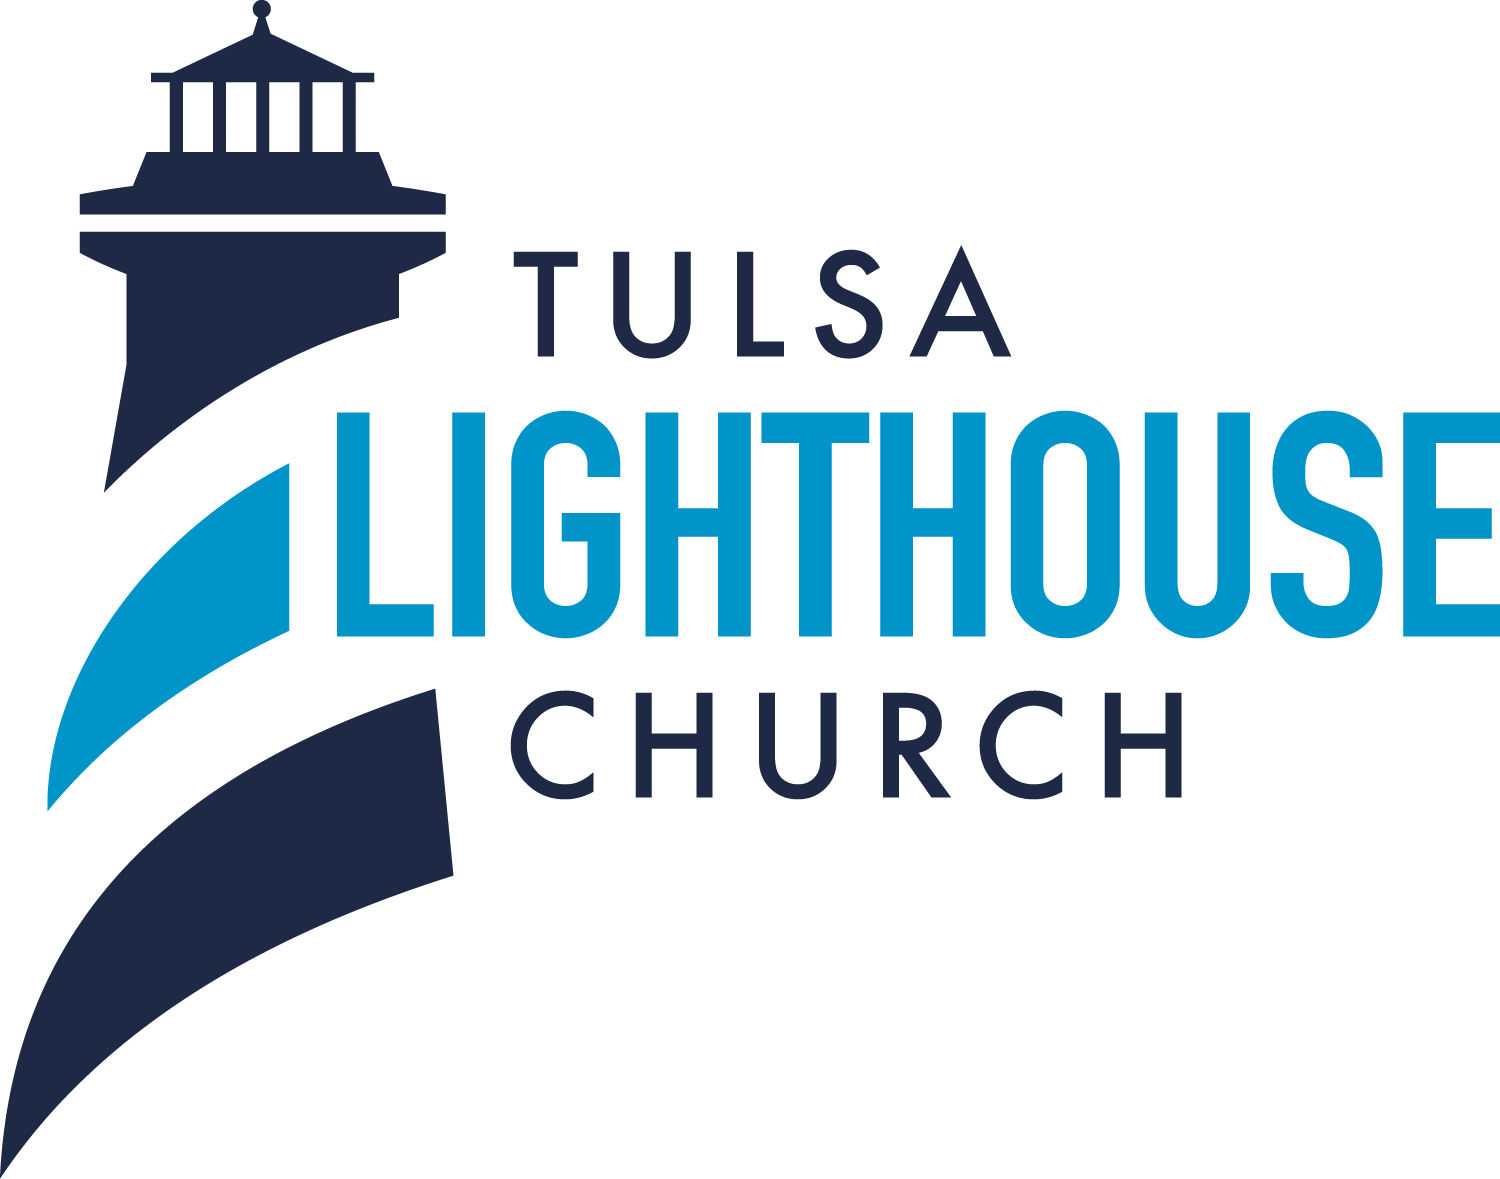 Tulsa Lighthouse Church